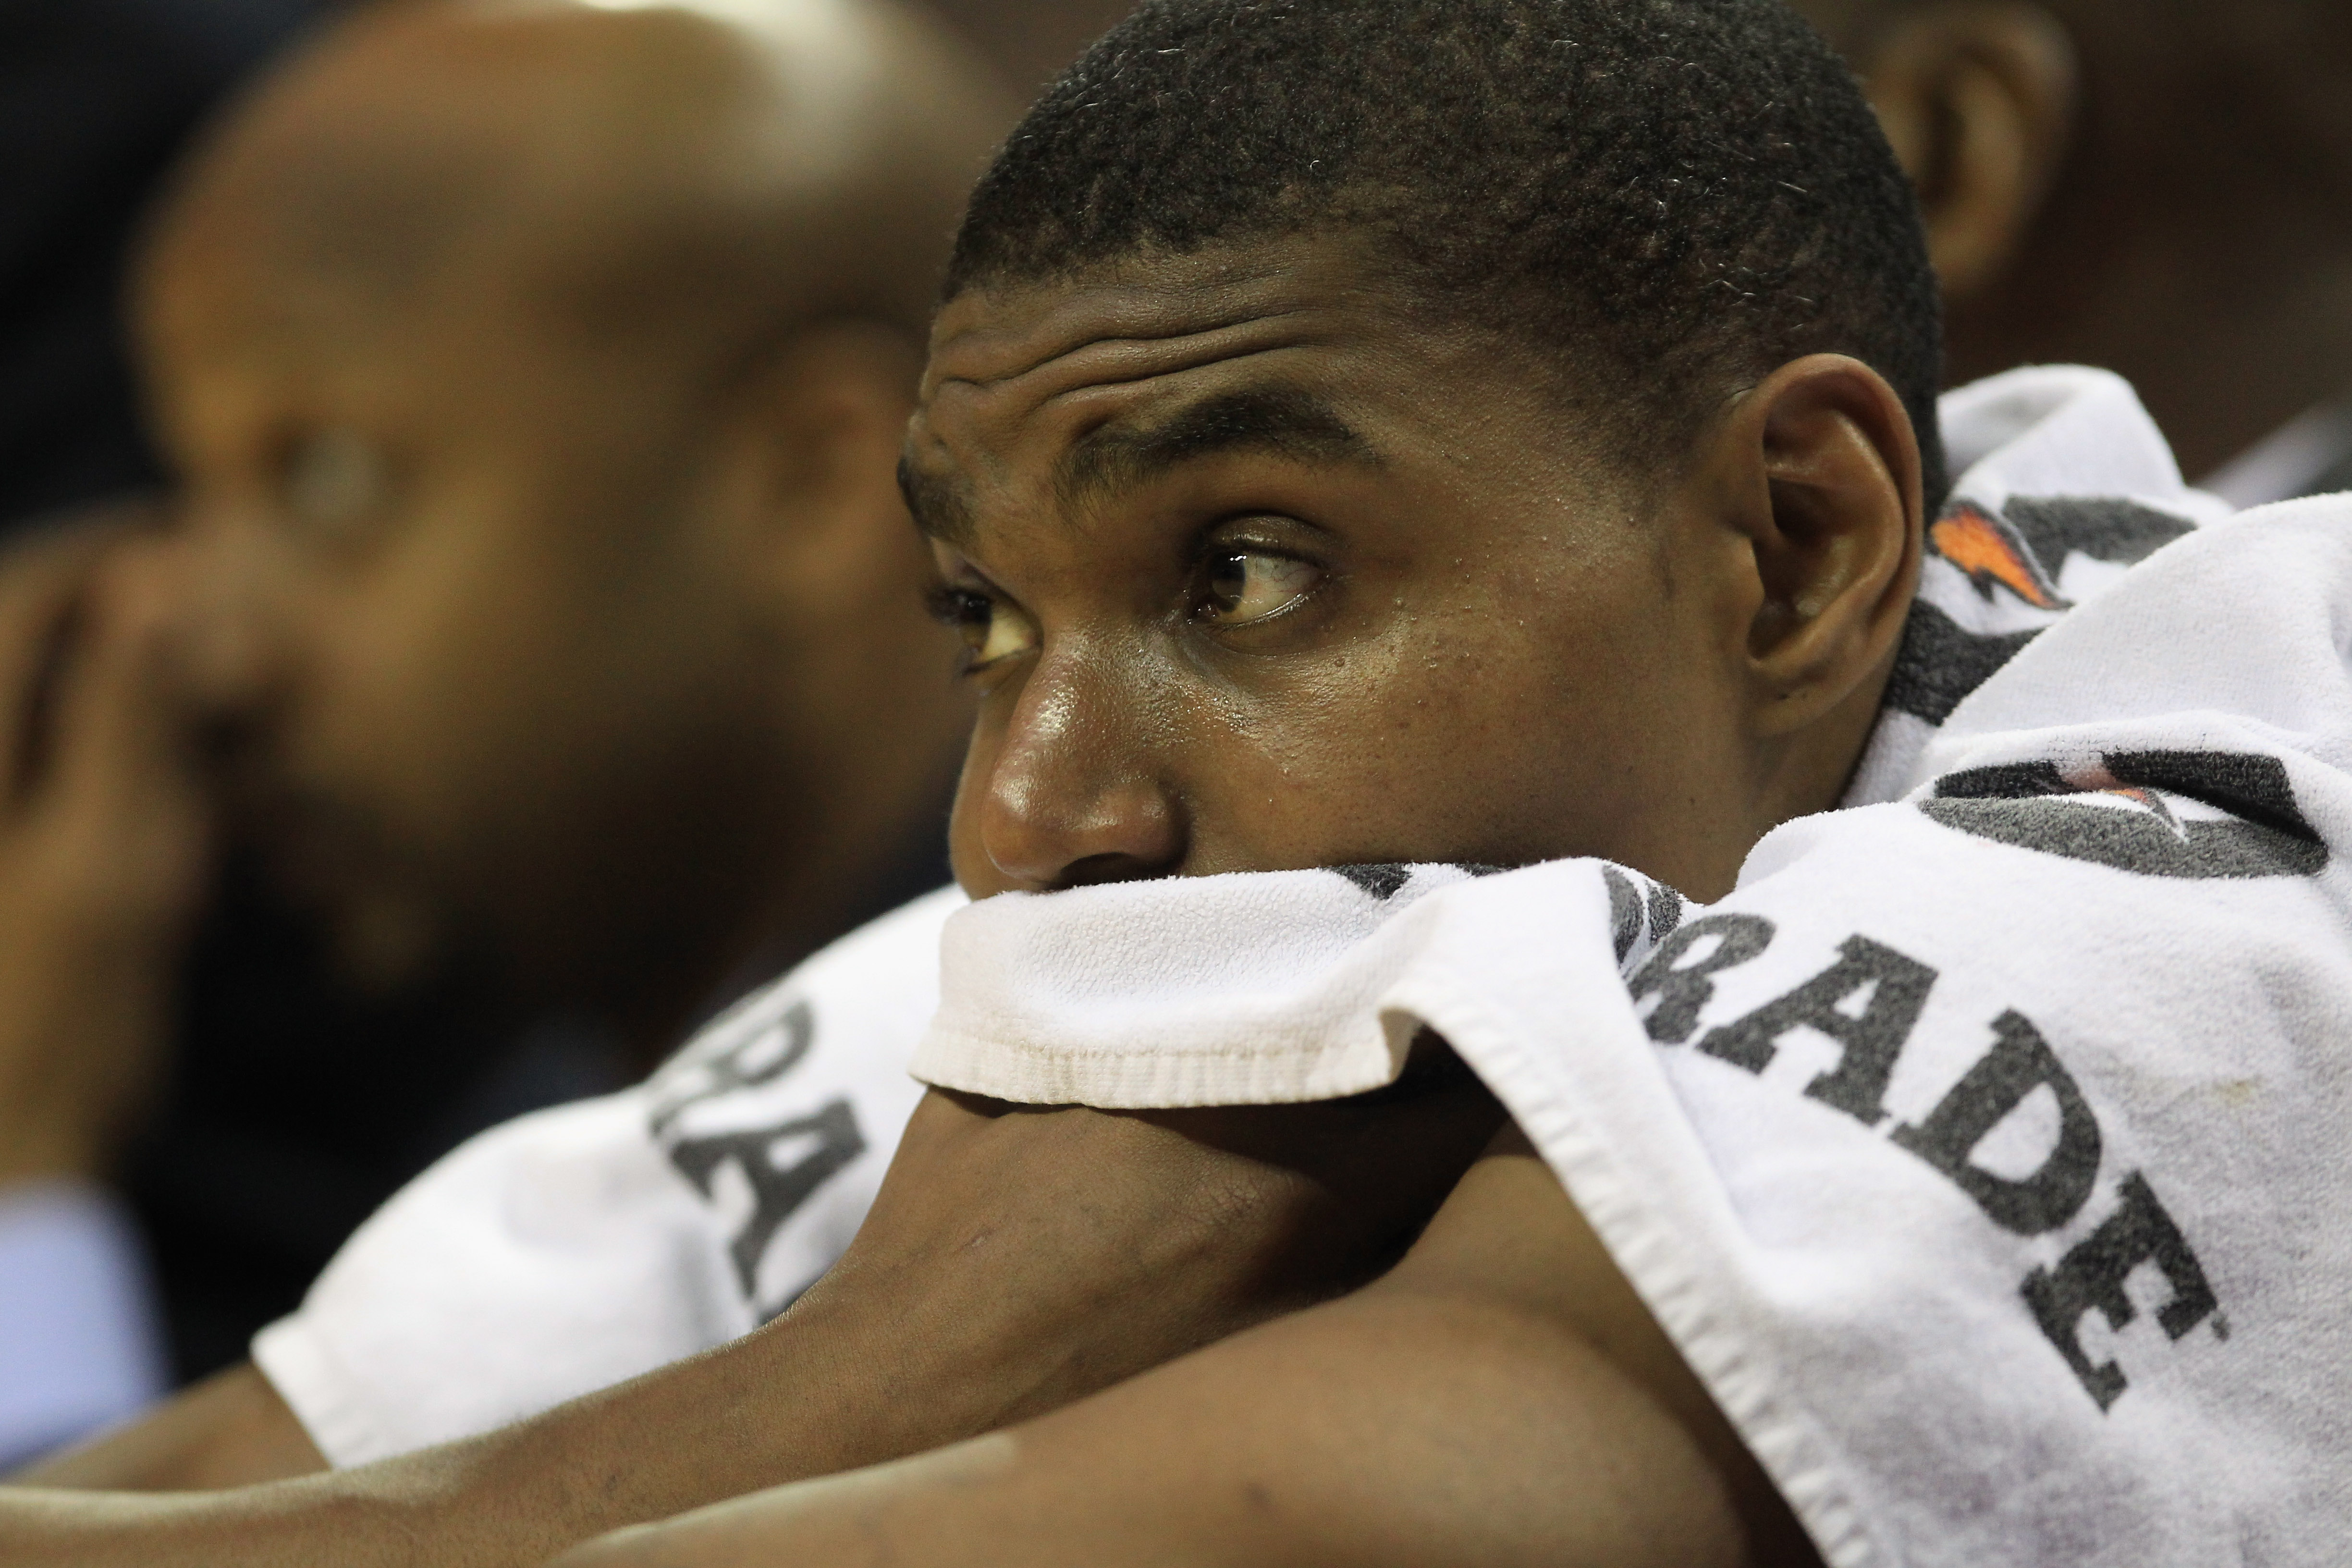 Bynum should be nervous about potentially leaving L.A.